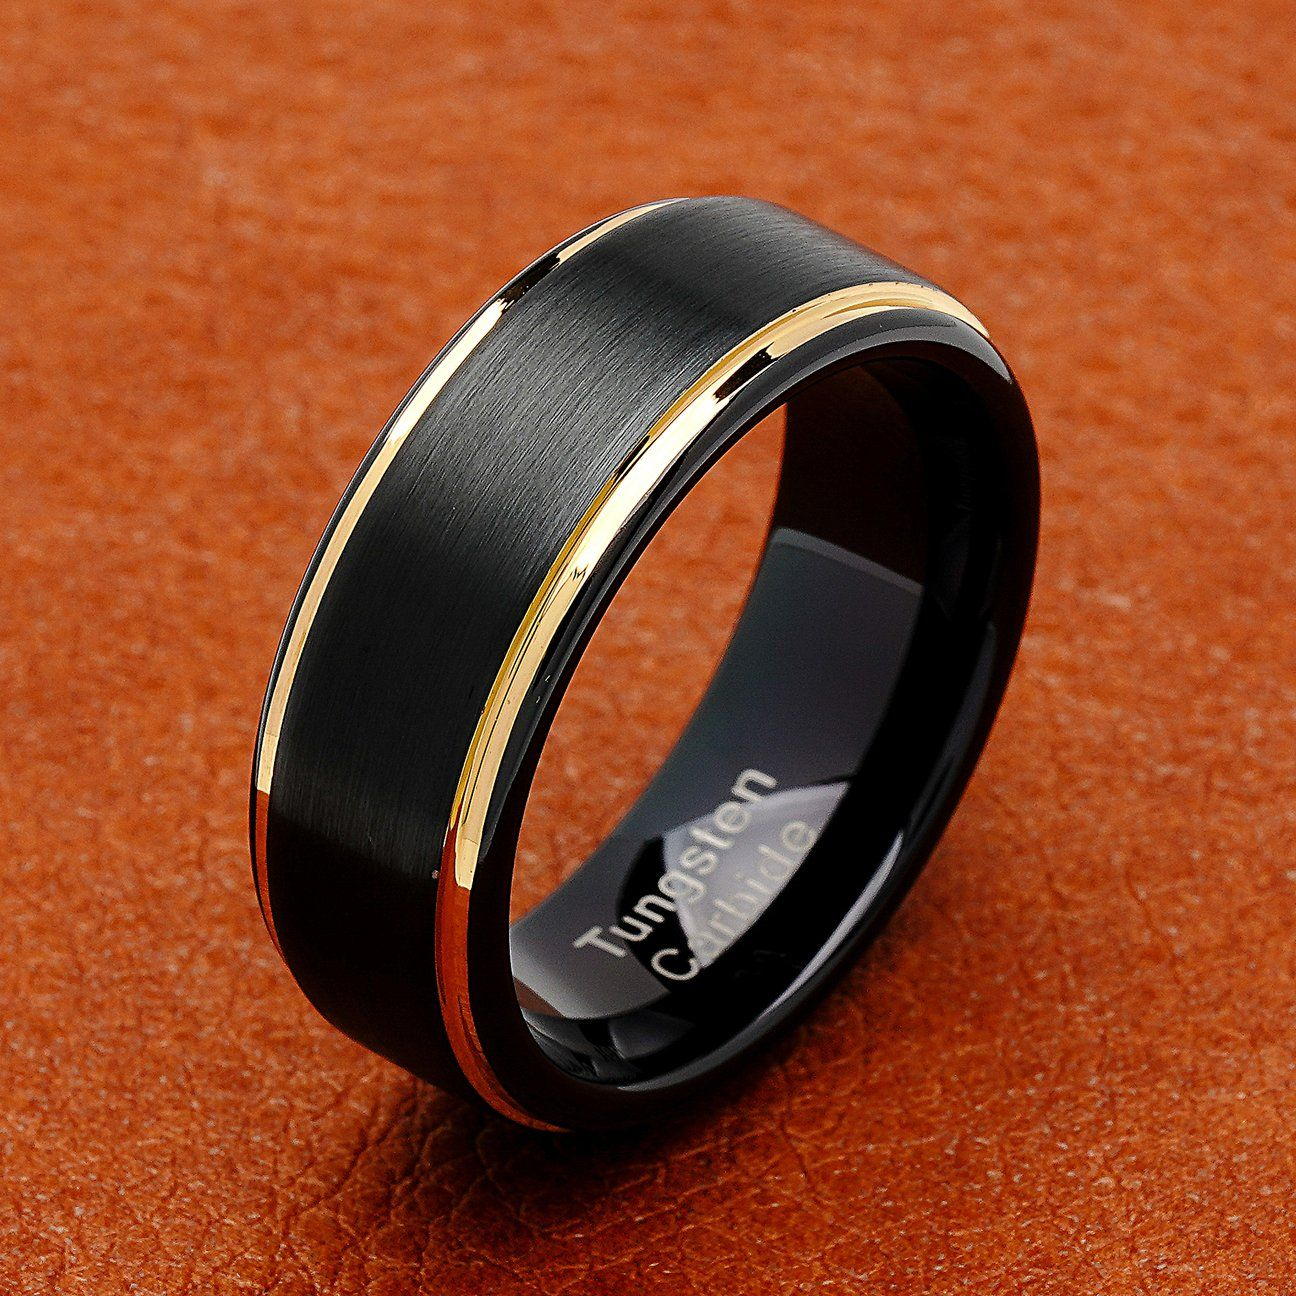 100s Jewelry Tungsten Rings For Men Two Tone Black Gold Wedding Band Center Brushed Engagement Size 6 16 Tungsten Mens Rings Mens Gold Wedding Band Mens Wedding Bands Tungsten